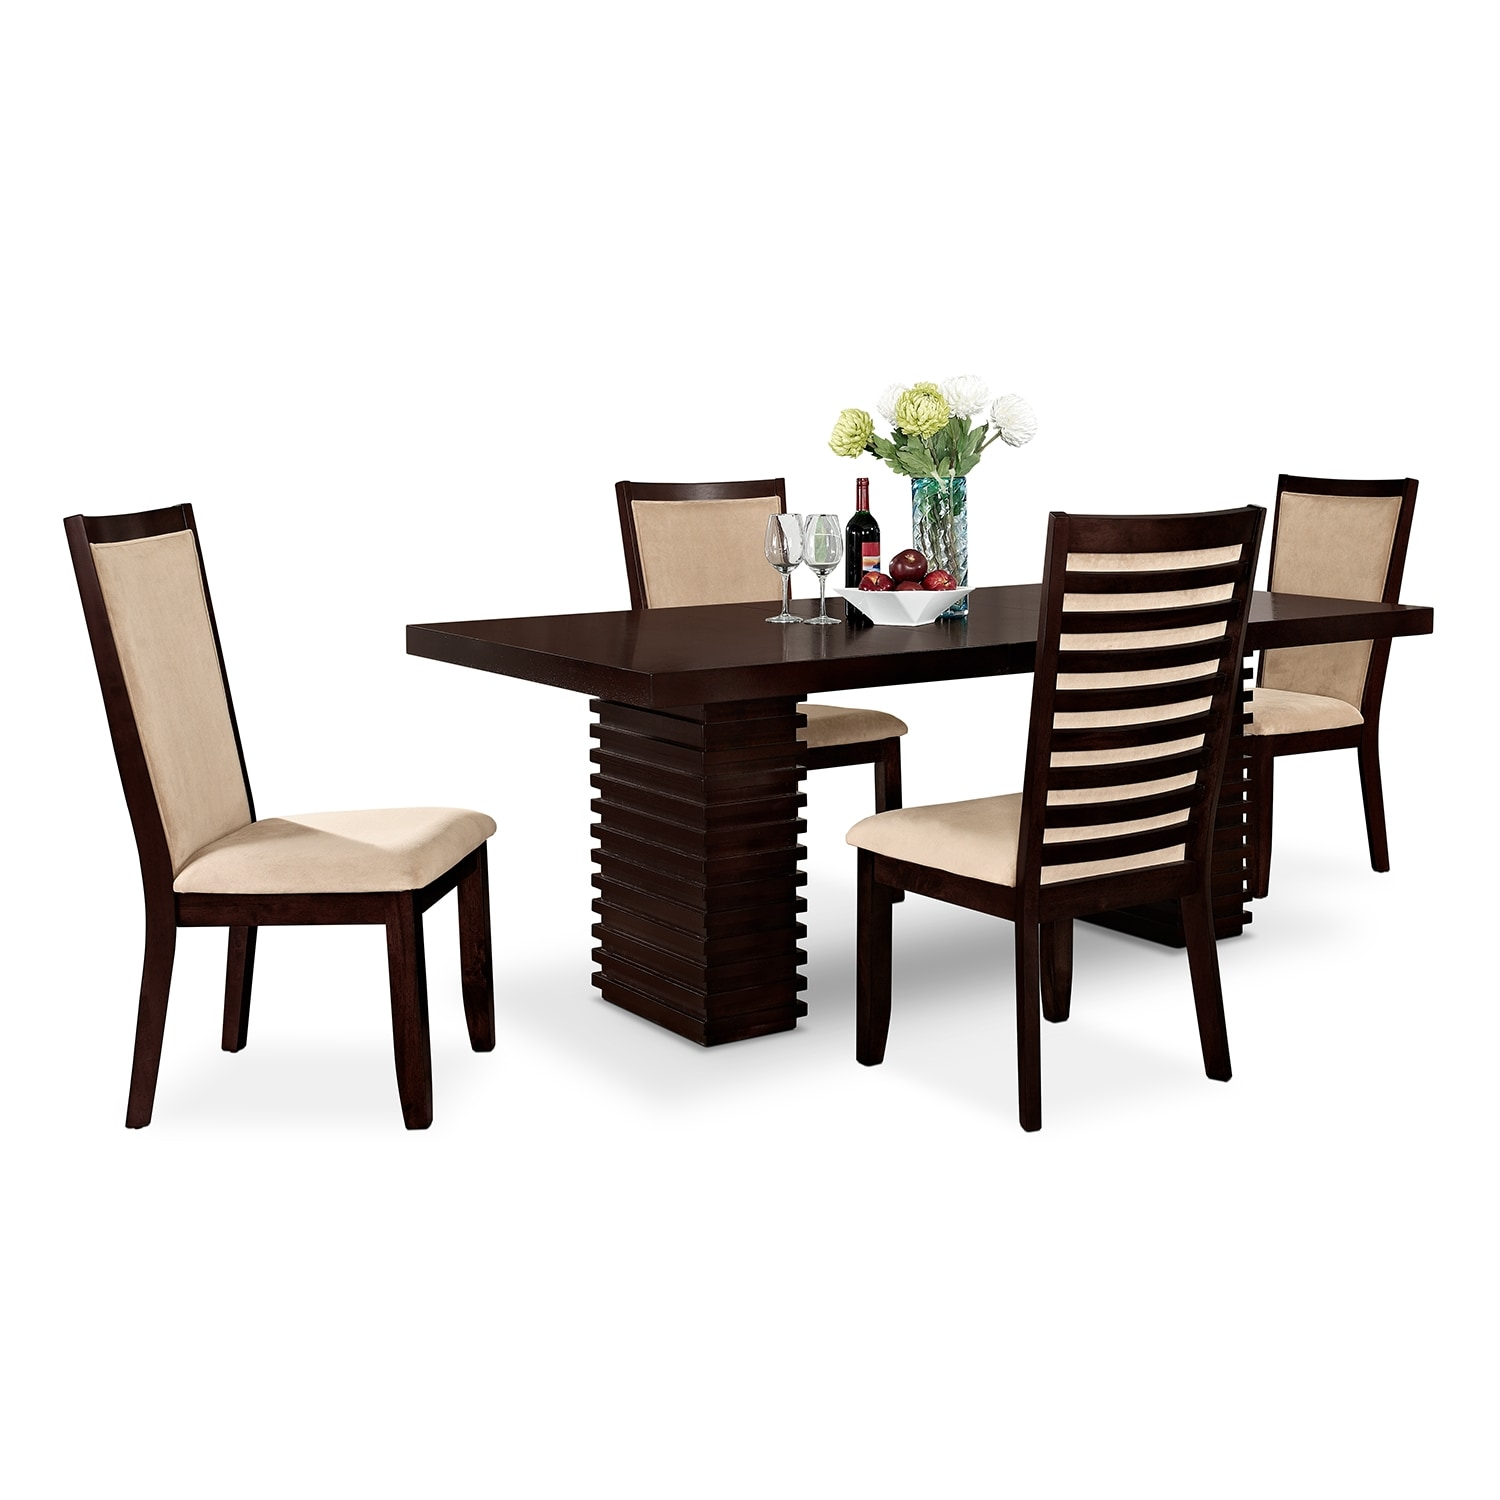 Value City Dining Room Tables Paragon Table And 4 Chairs Merlot And Camel Value City Furniture